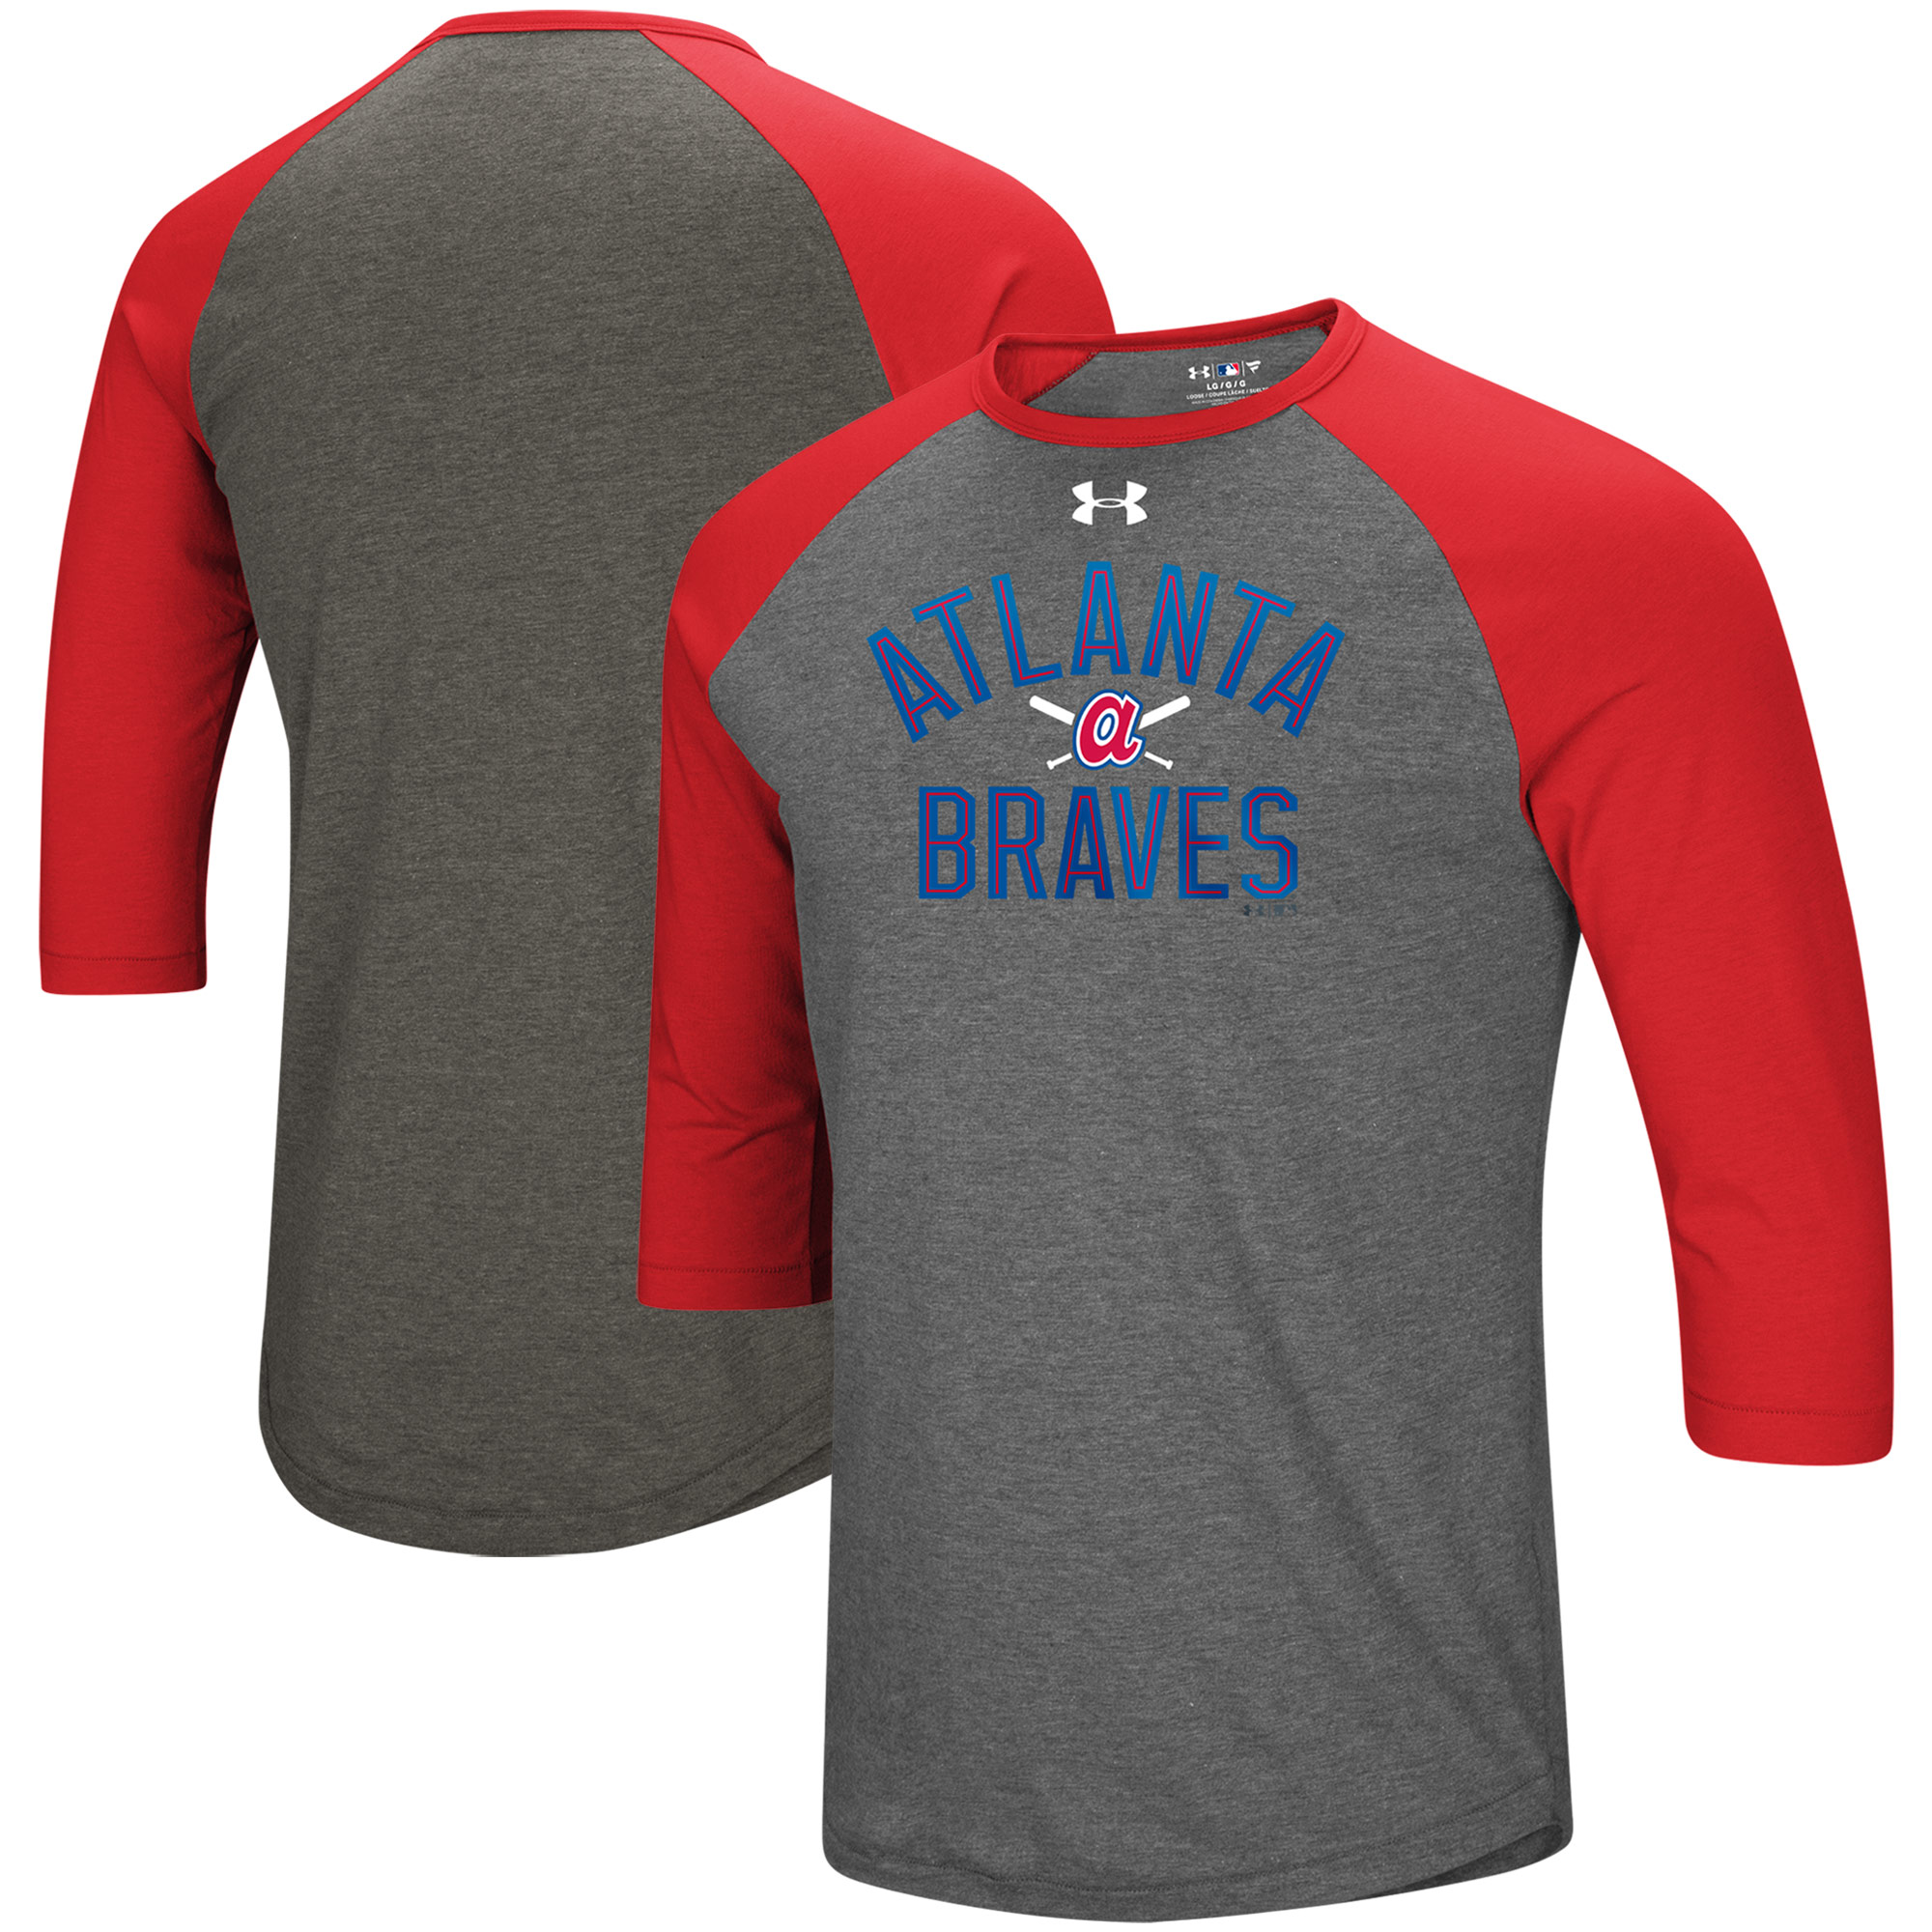 Atlanta Braves Under Armour Tri-Blend Cooperstown Crossed Bats 3/4-Sleeve Raglan Performance T-Shirt - Heathered Gray/Red